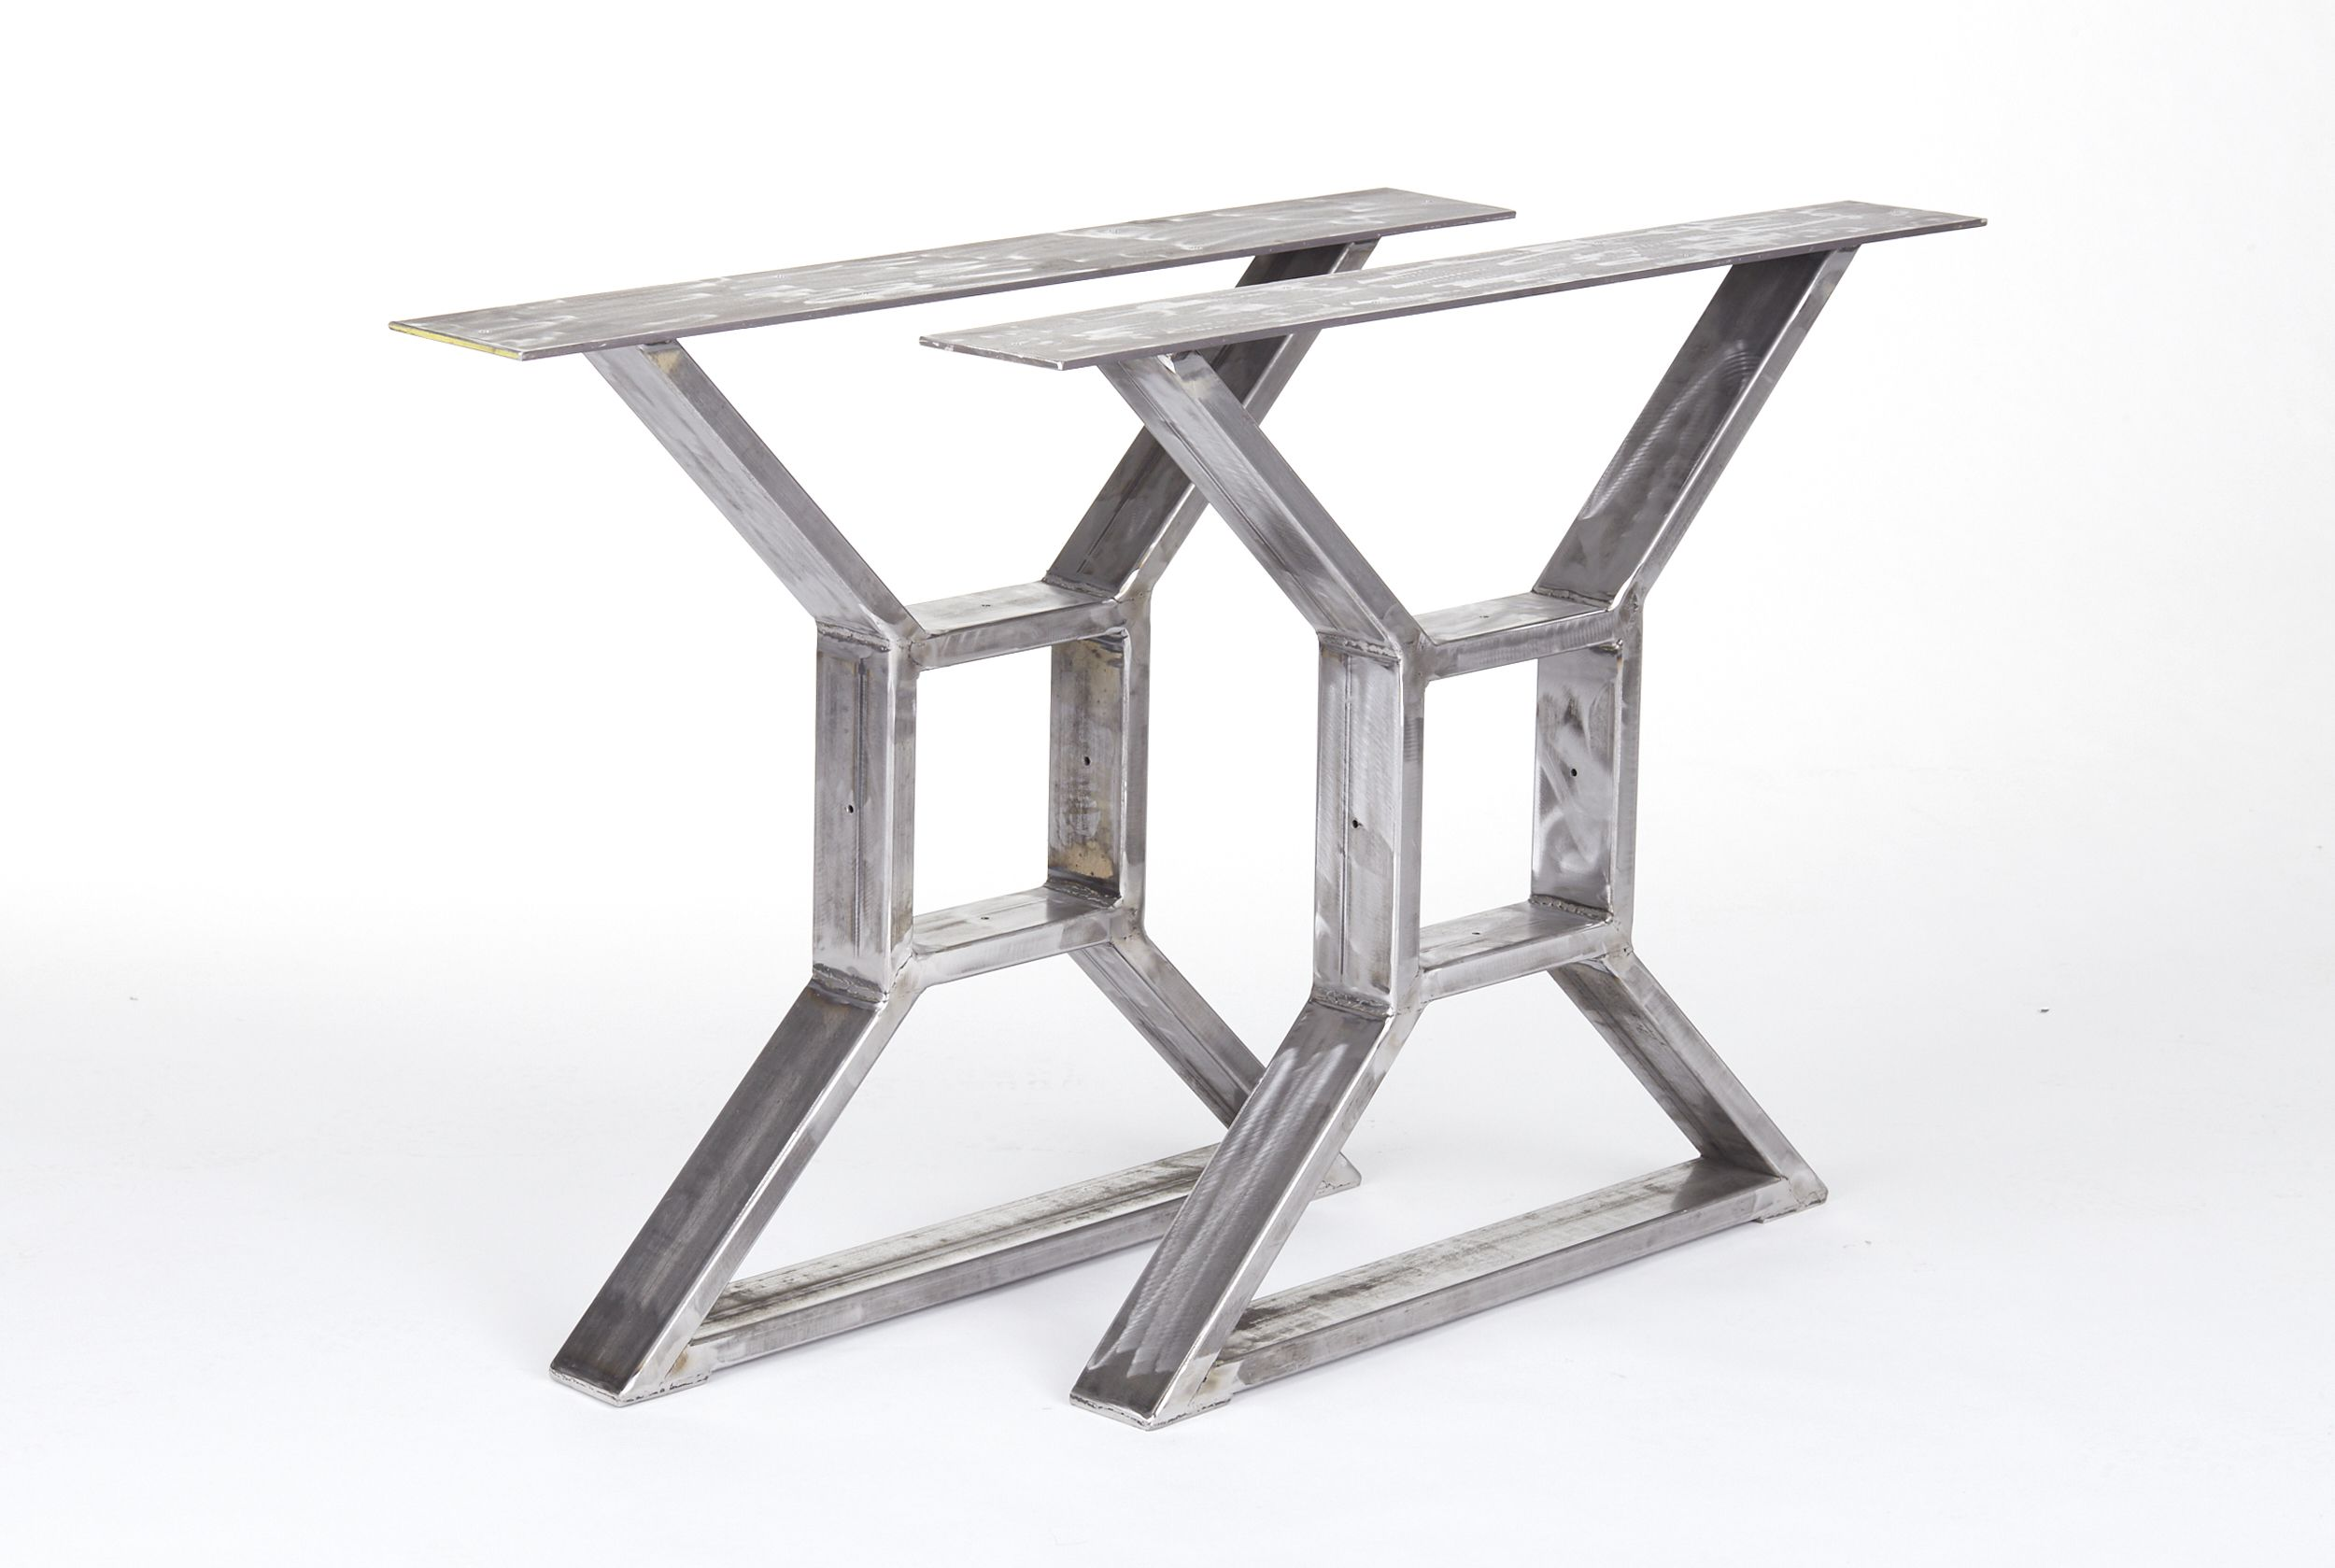 Hand Crafted Industrial Steel X Table Legs By The Urban Reclaimed Co